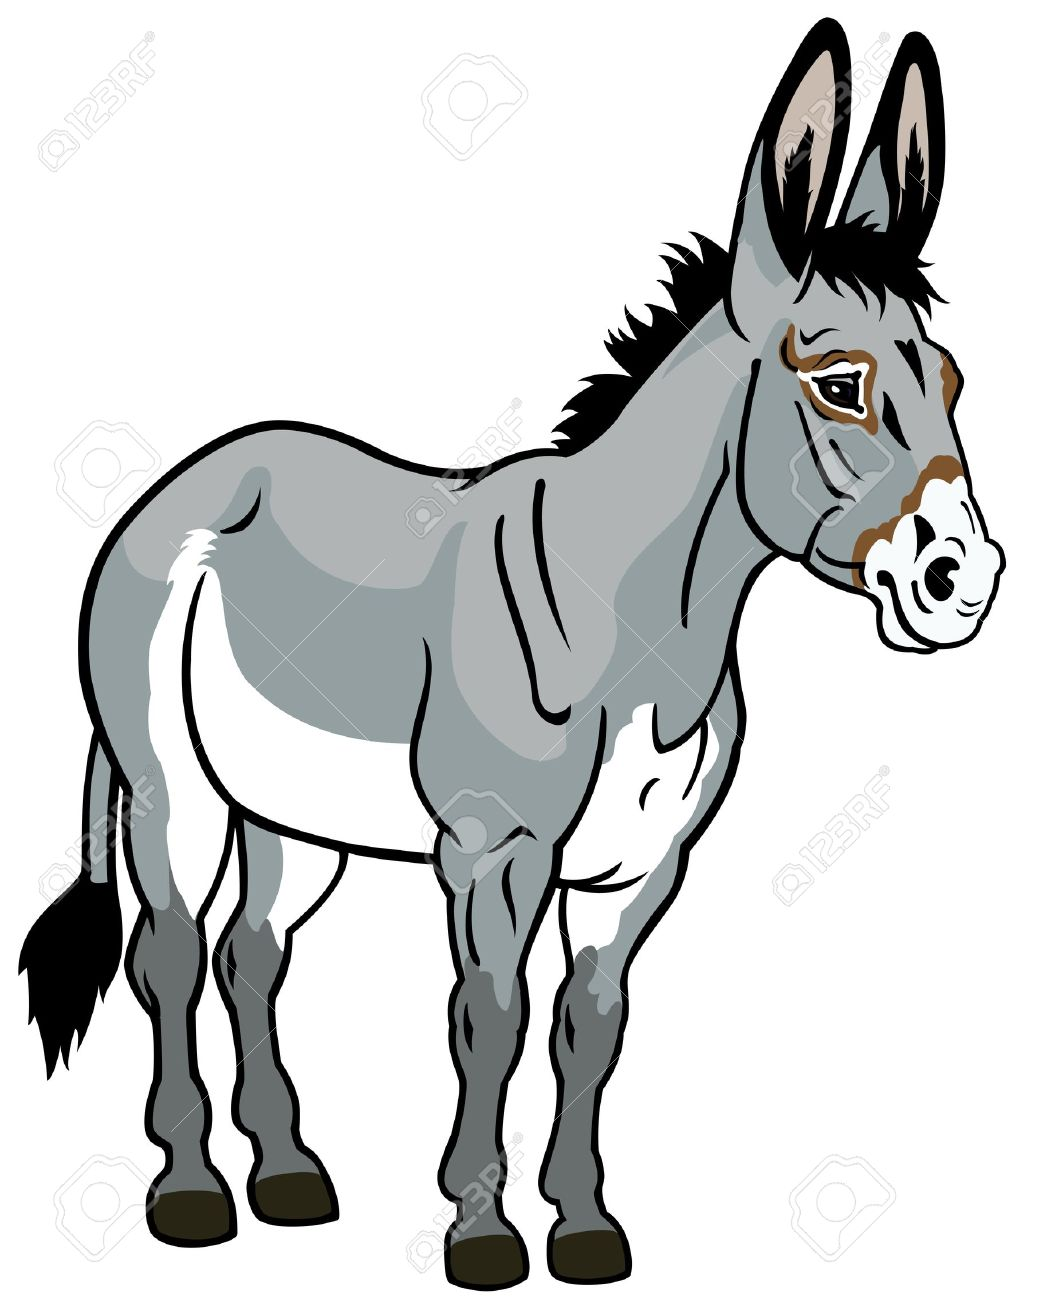 donkey,front view illustration isolated on white background Stock Vector - 17501090